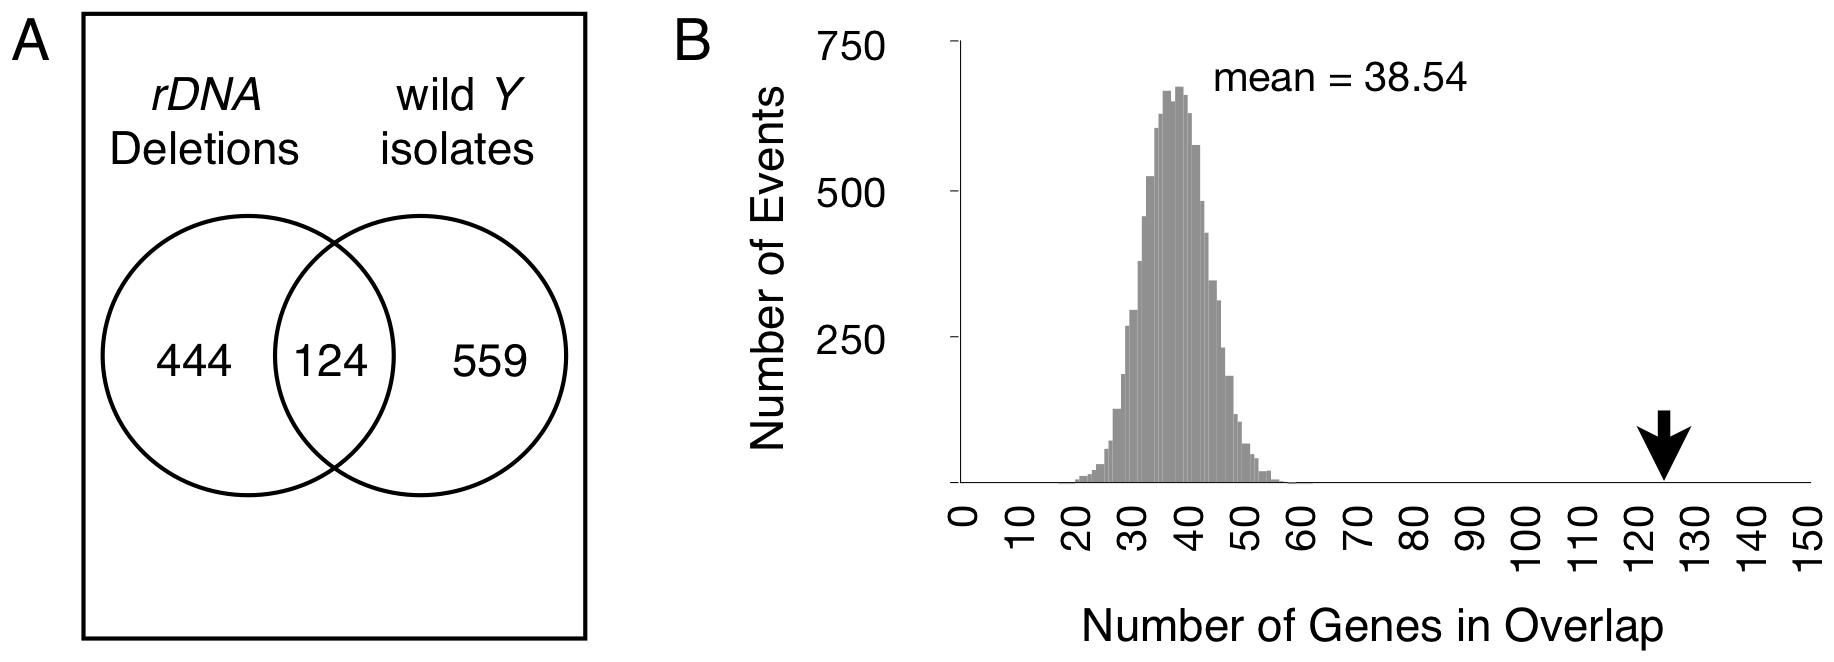 Differentially expressed genes are shared between chromosomes with induced <i>rDNA</i> deletions and naturally occurring <i>Y</i> chromosomes.